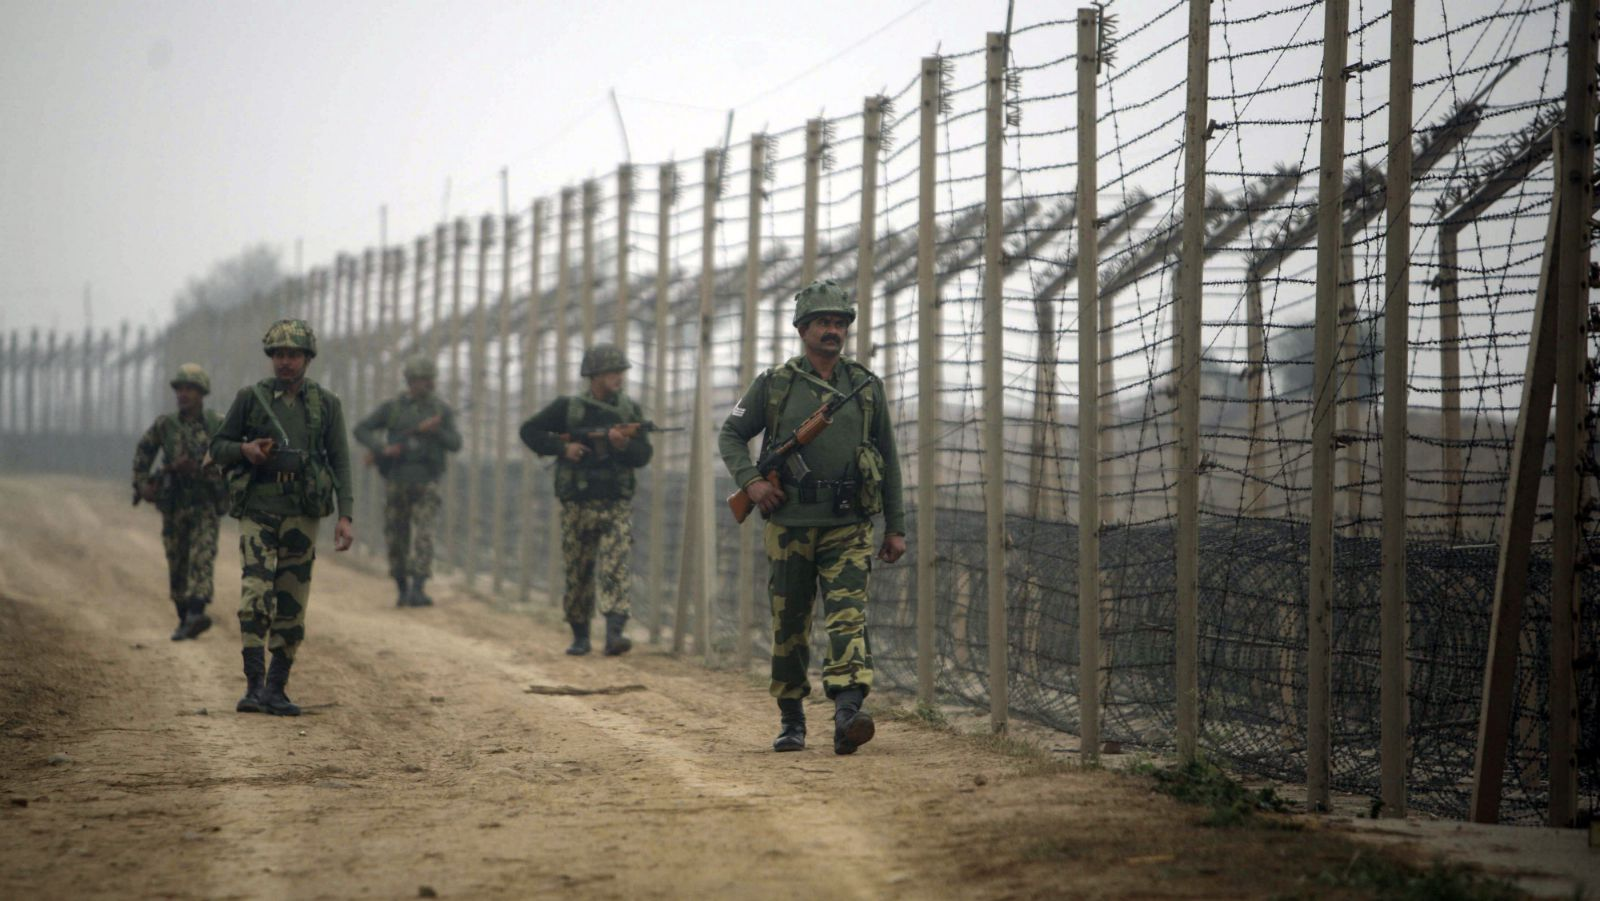 India's Border Security Force (BSF) soldiers patrol near the fenced border with Pakistan in Suchetgarh, southwest of Jammu, January 12, 2010. An Indian soldier was killed on Monday in cross-border firing in Kashmir, the latest in a spurt of violence in the disputed region that has raised tensions with Pakistan, officials said.